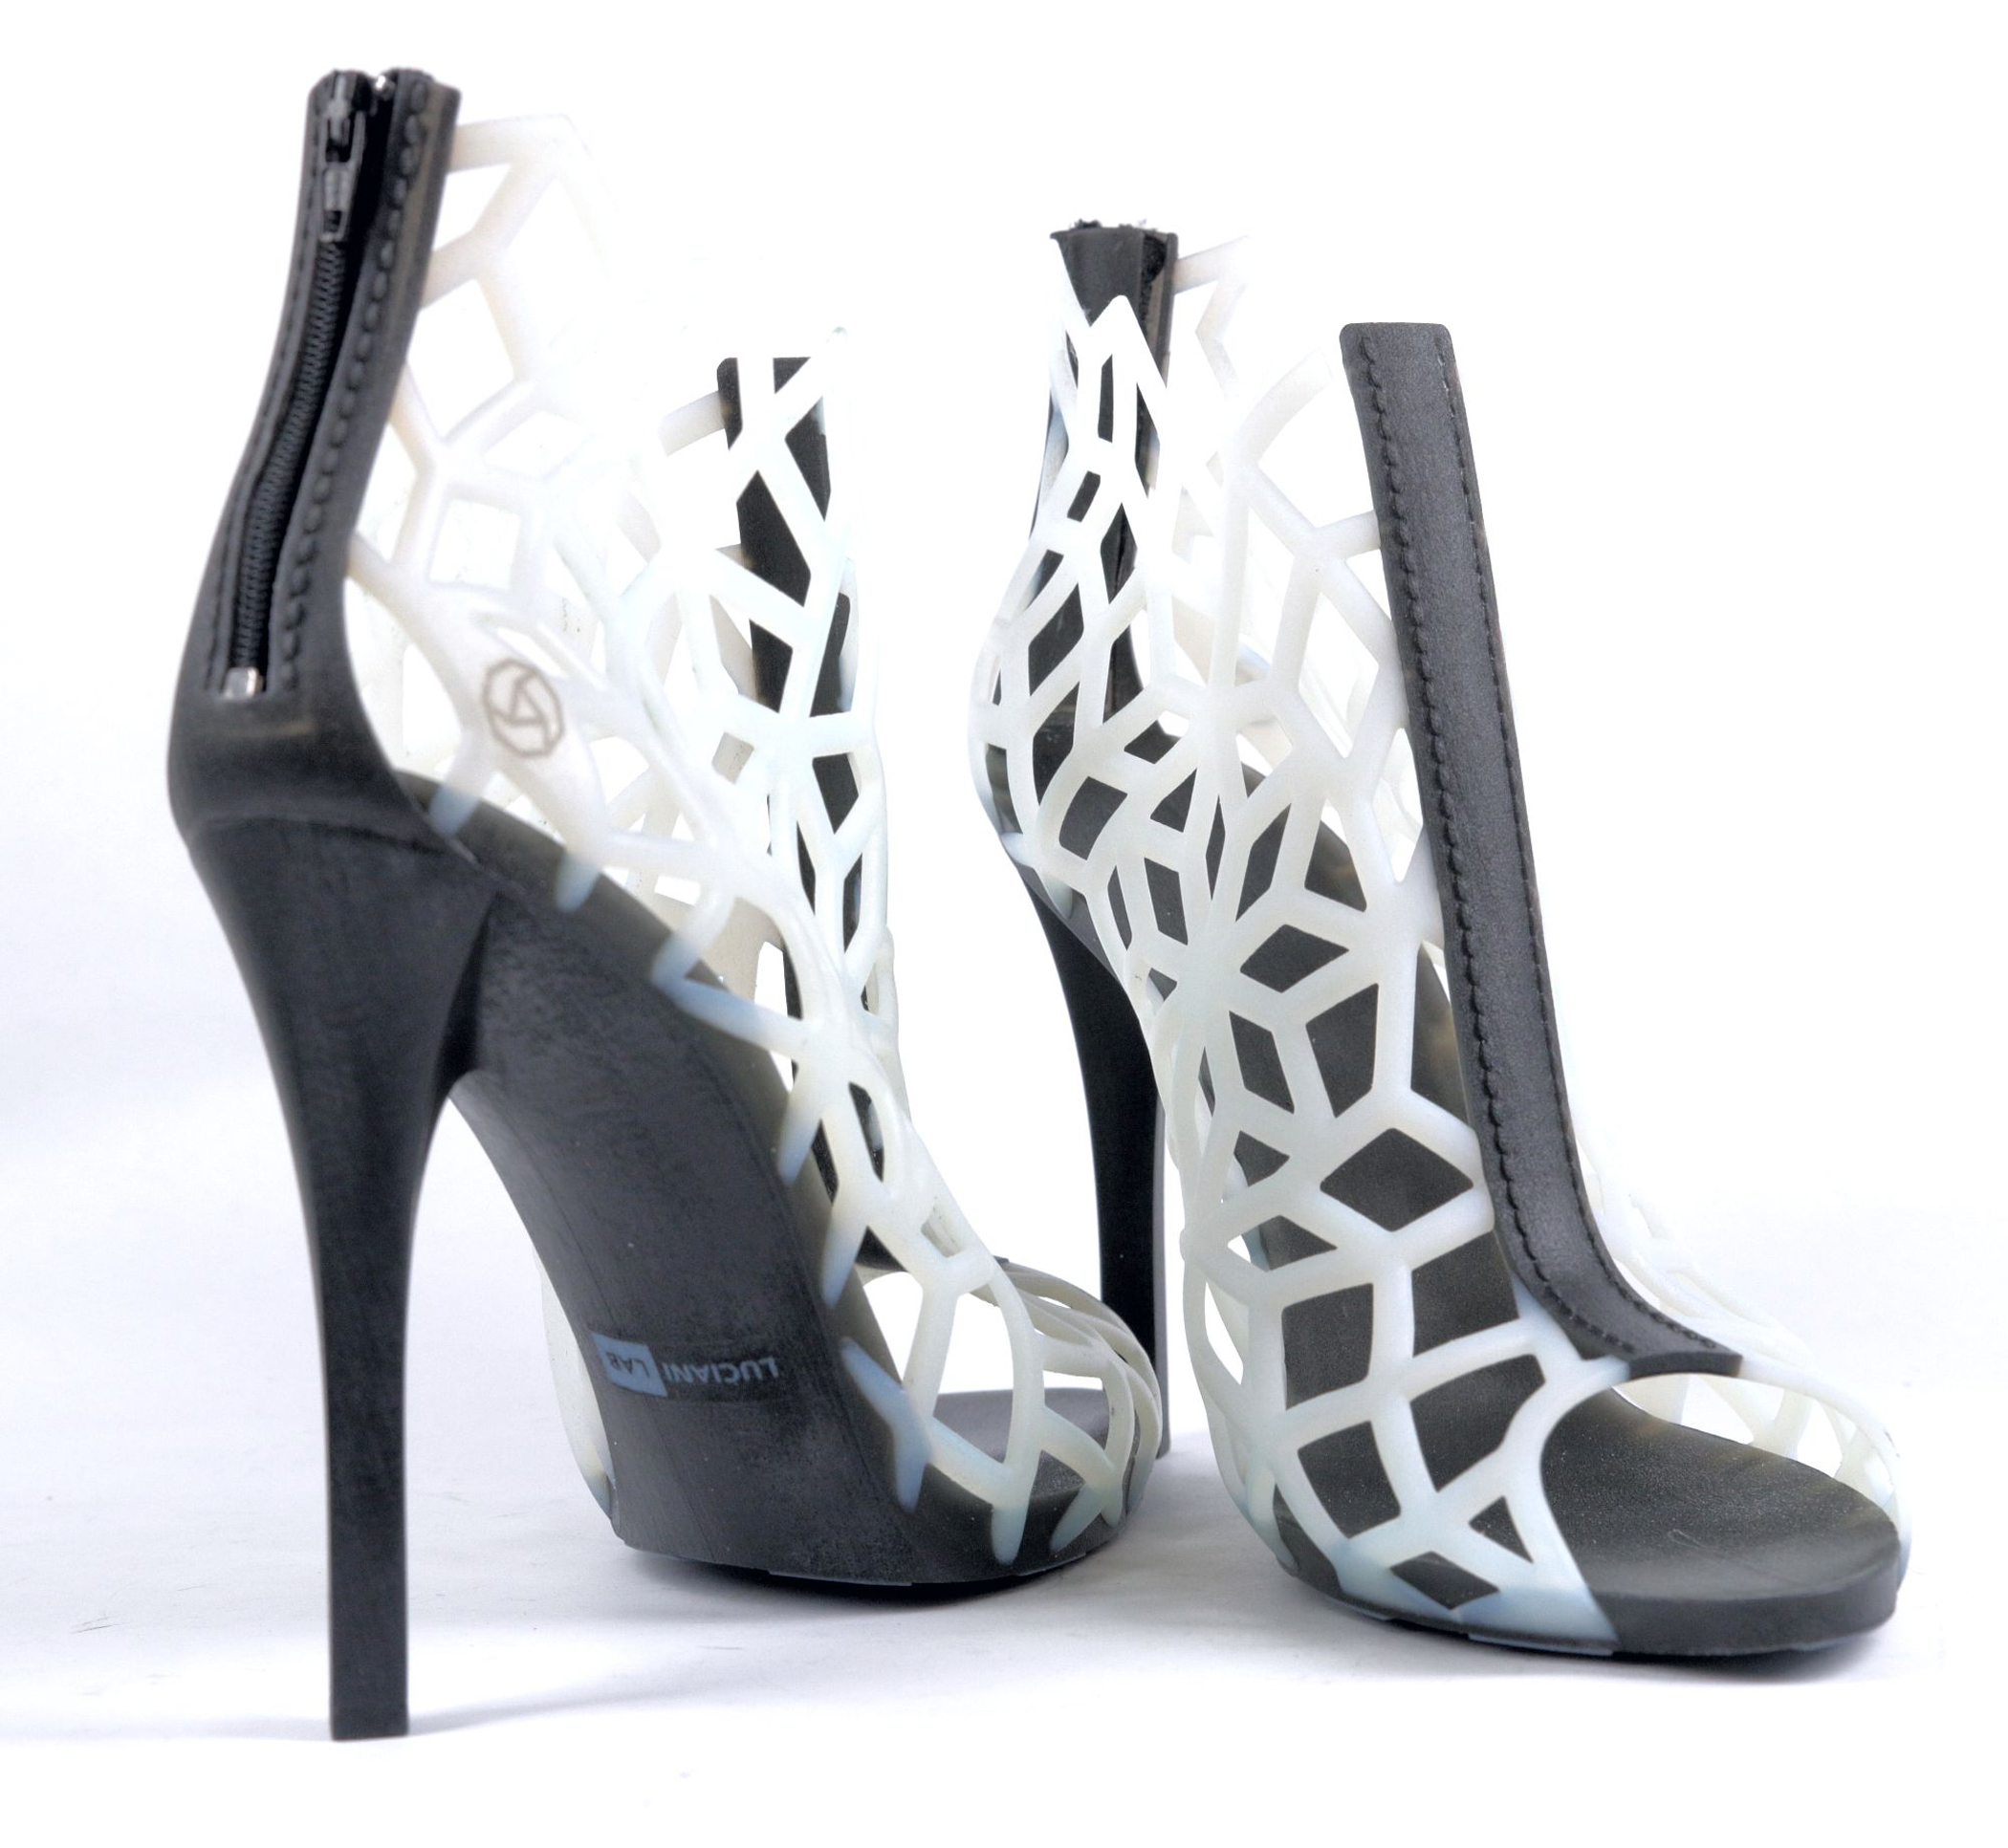 3D Printed Italian Fashion Collection